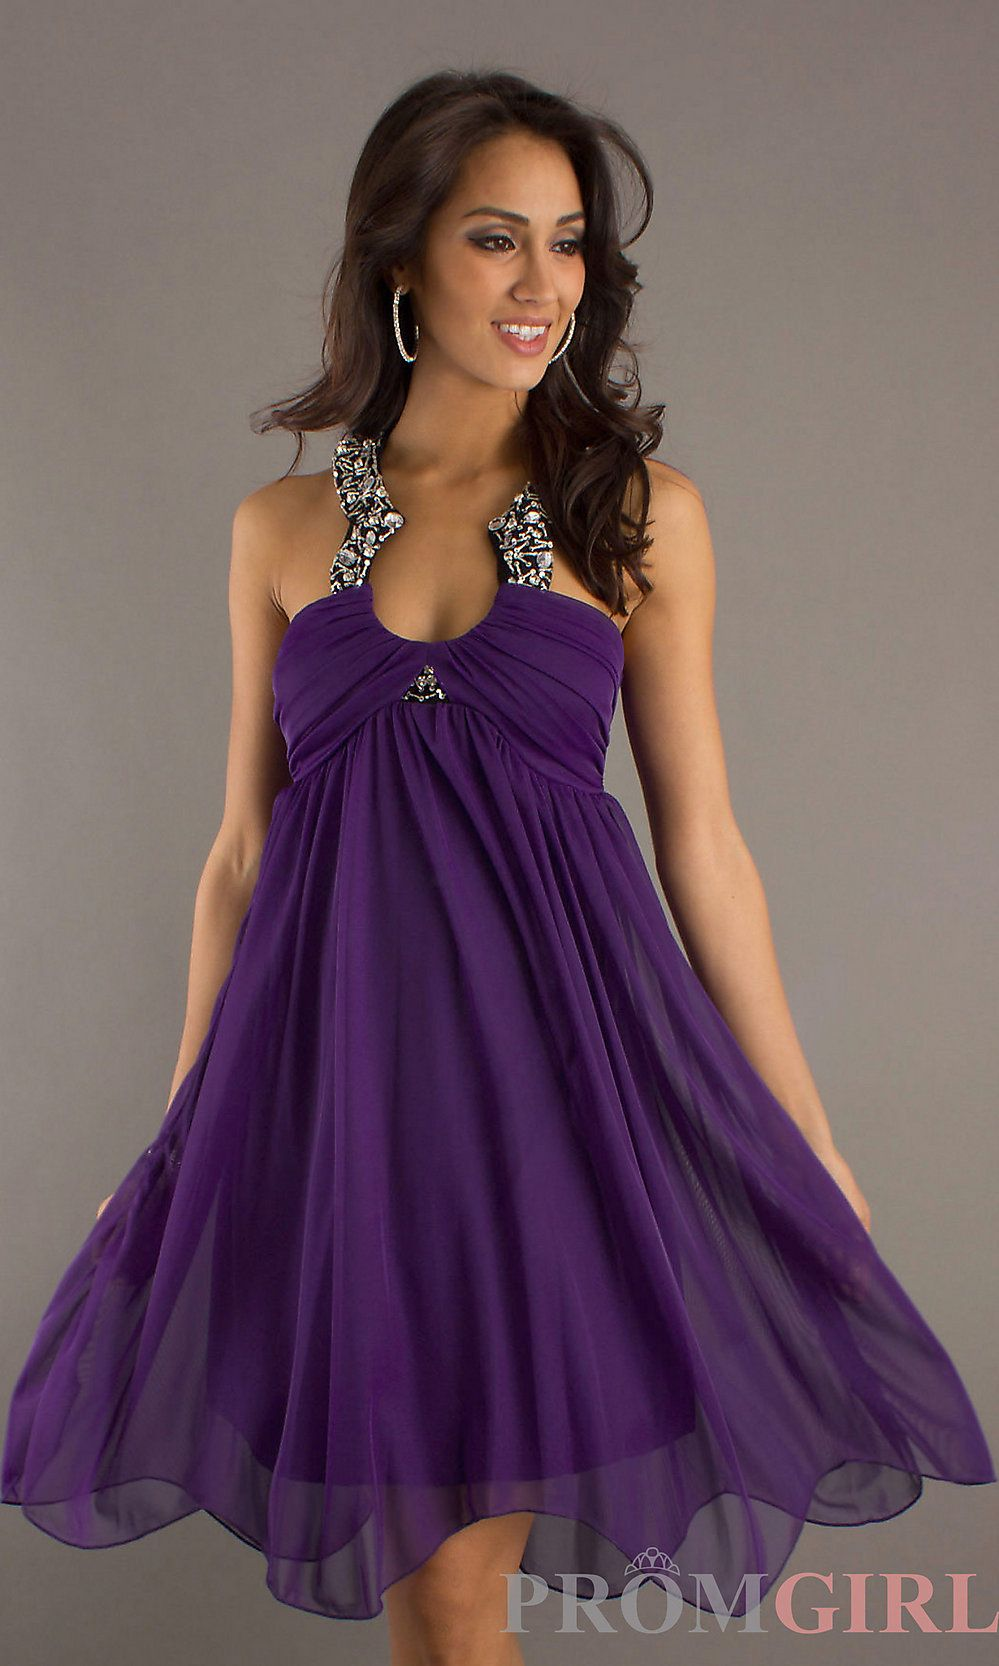 Homecoming dresses dresses for homecoming party dress promgirl